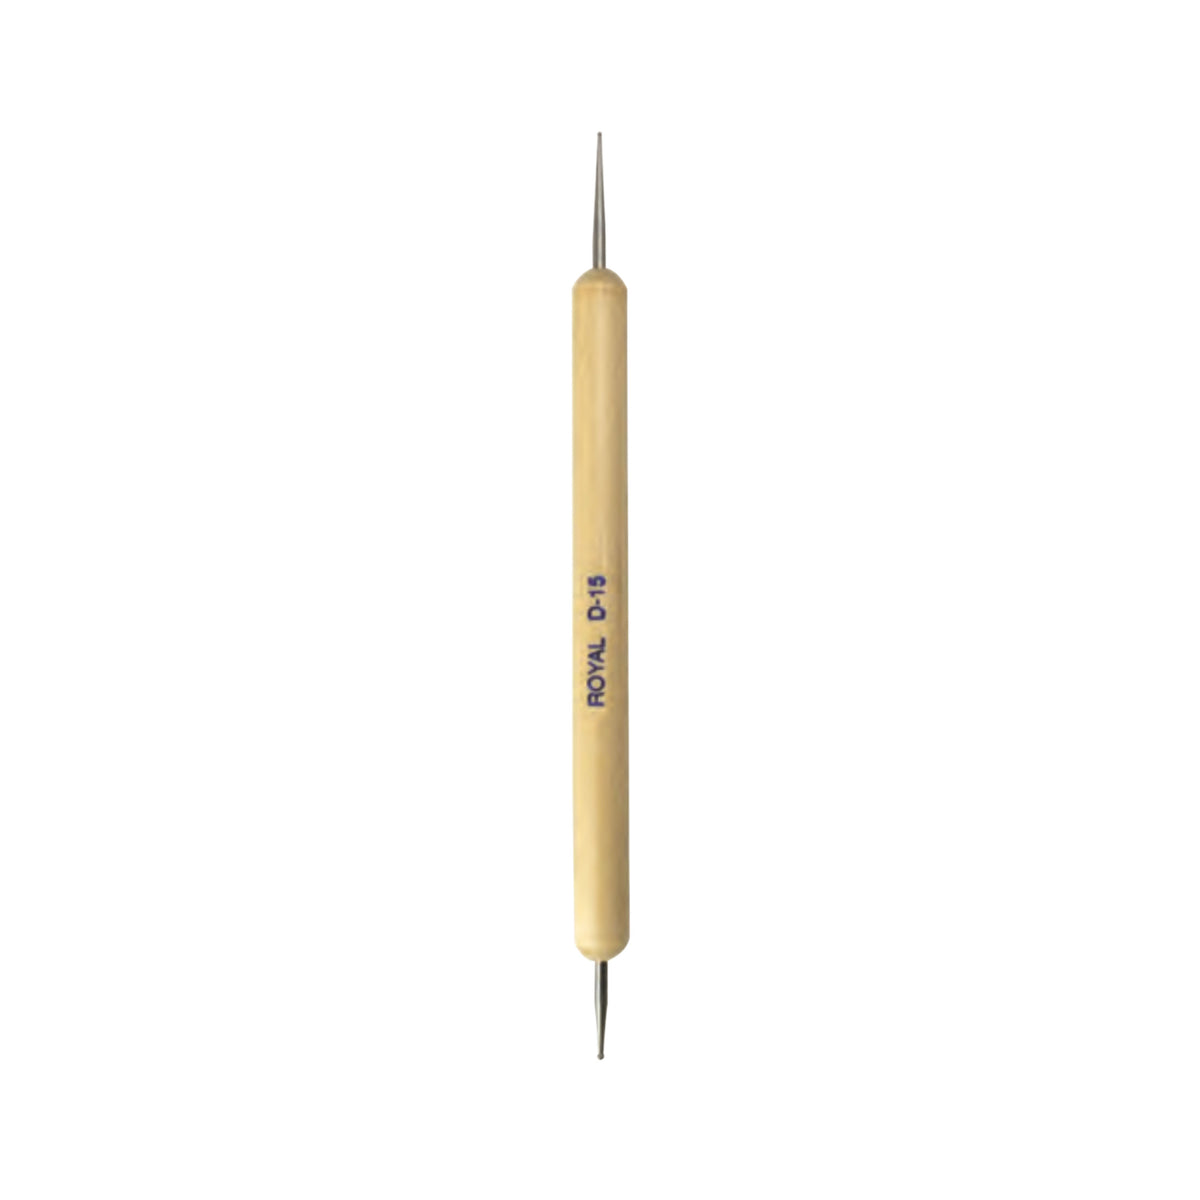 Royal & Langnickel Wax & Clay Duo Stylus Sculpting Tool (D15) - Red Carpet FX - Professional Makeup